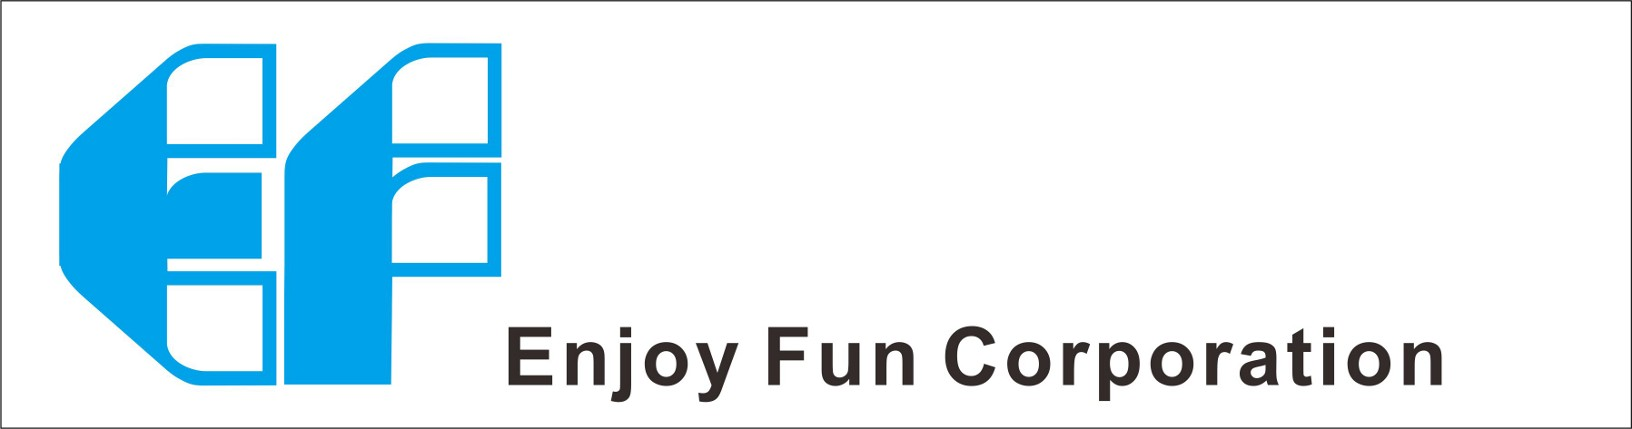 Enjoy Fun Corporation